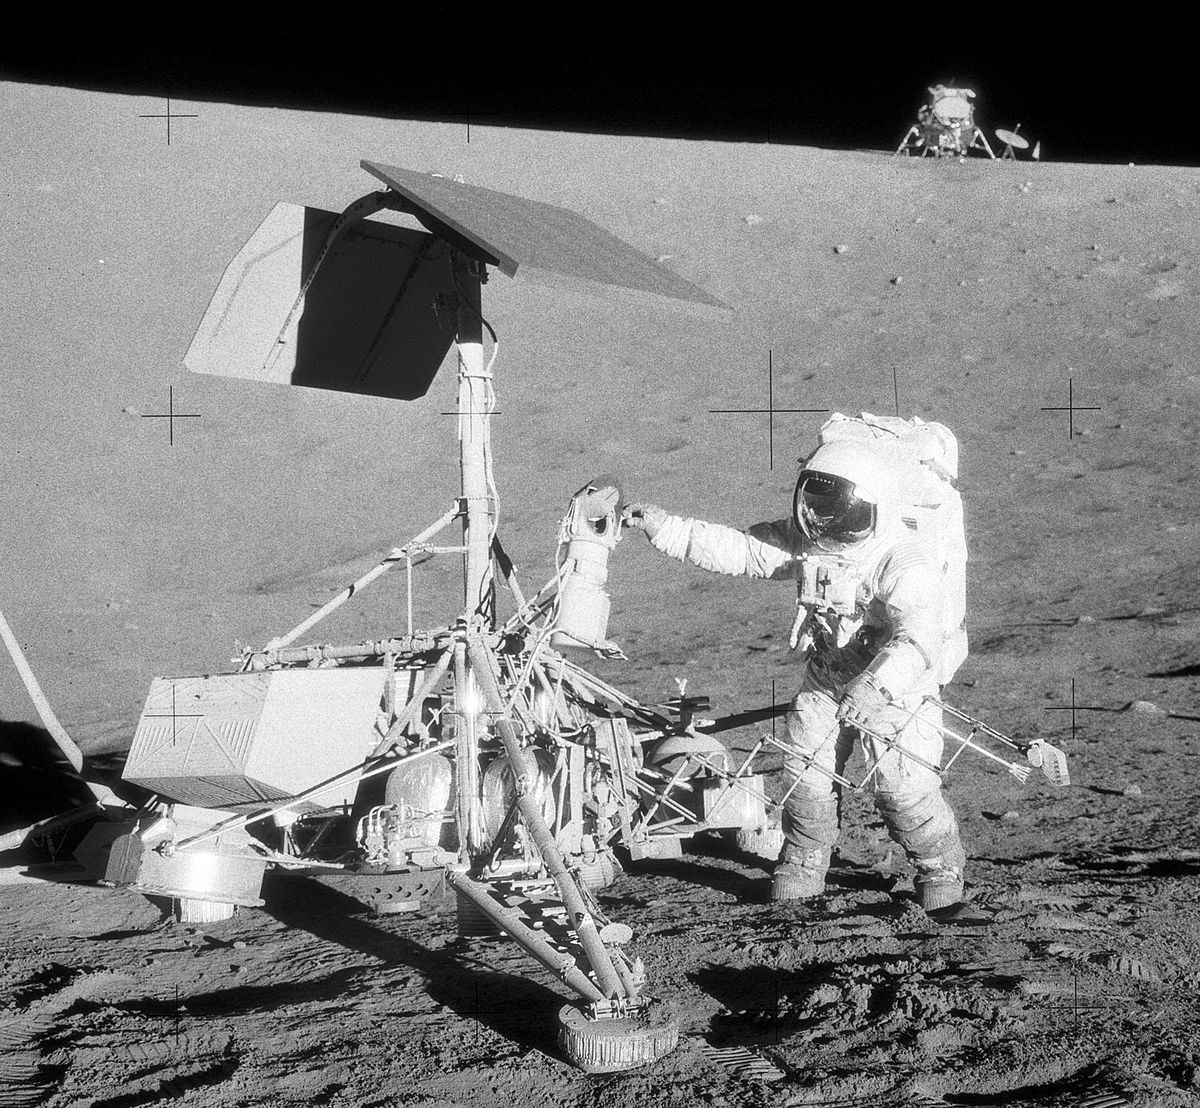 Third-party evidence for Apollo Moon landings - Wikipedia